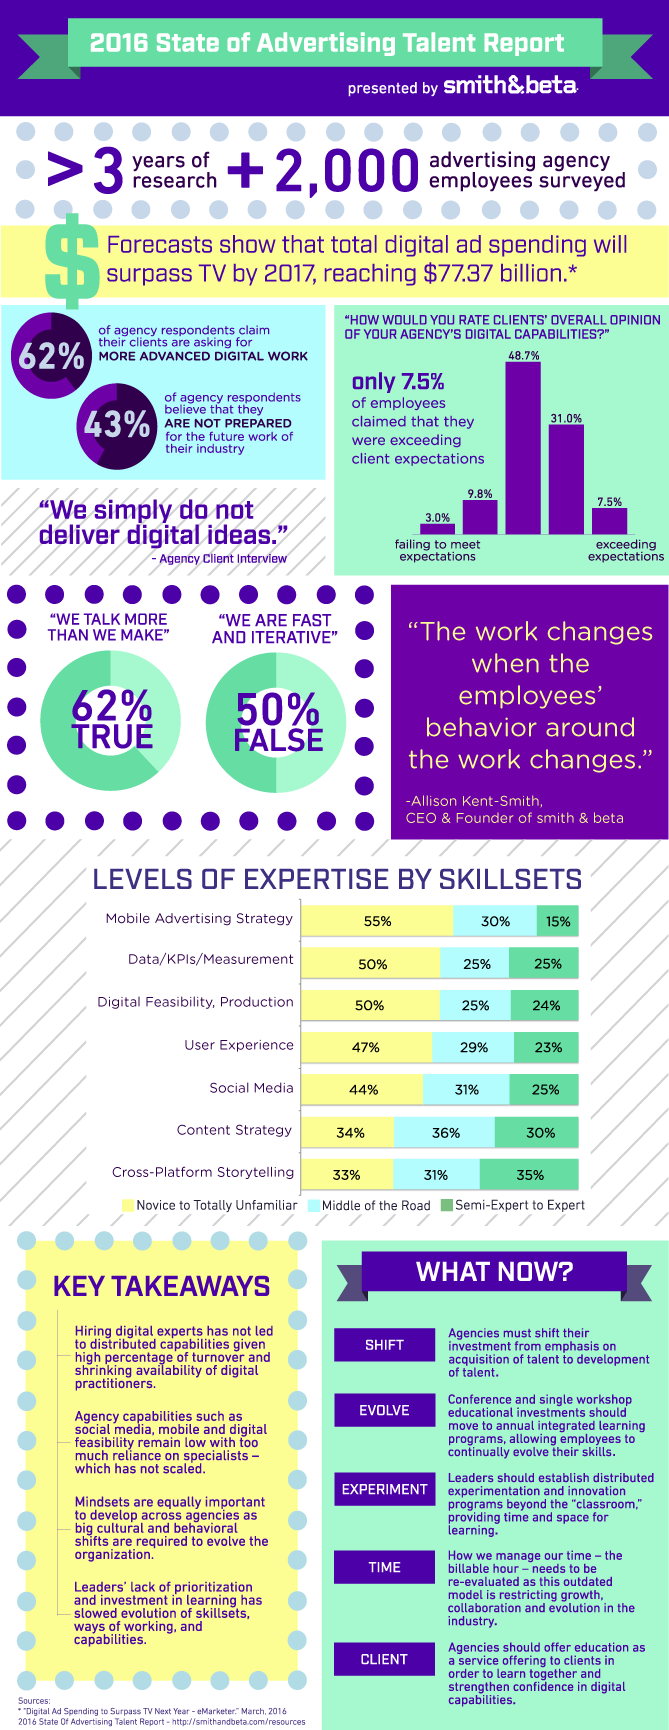 hubspot_infographic_669ppxw_v5_1